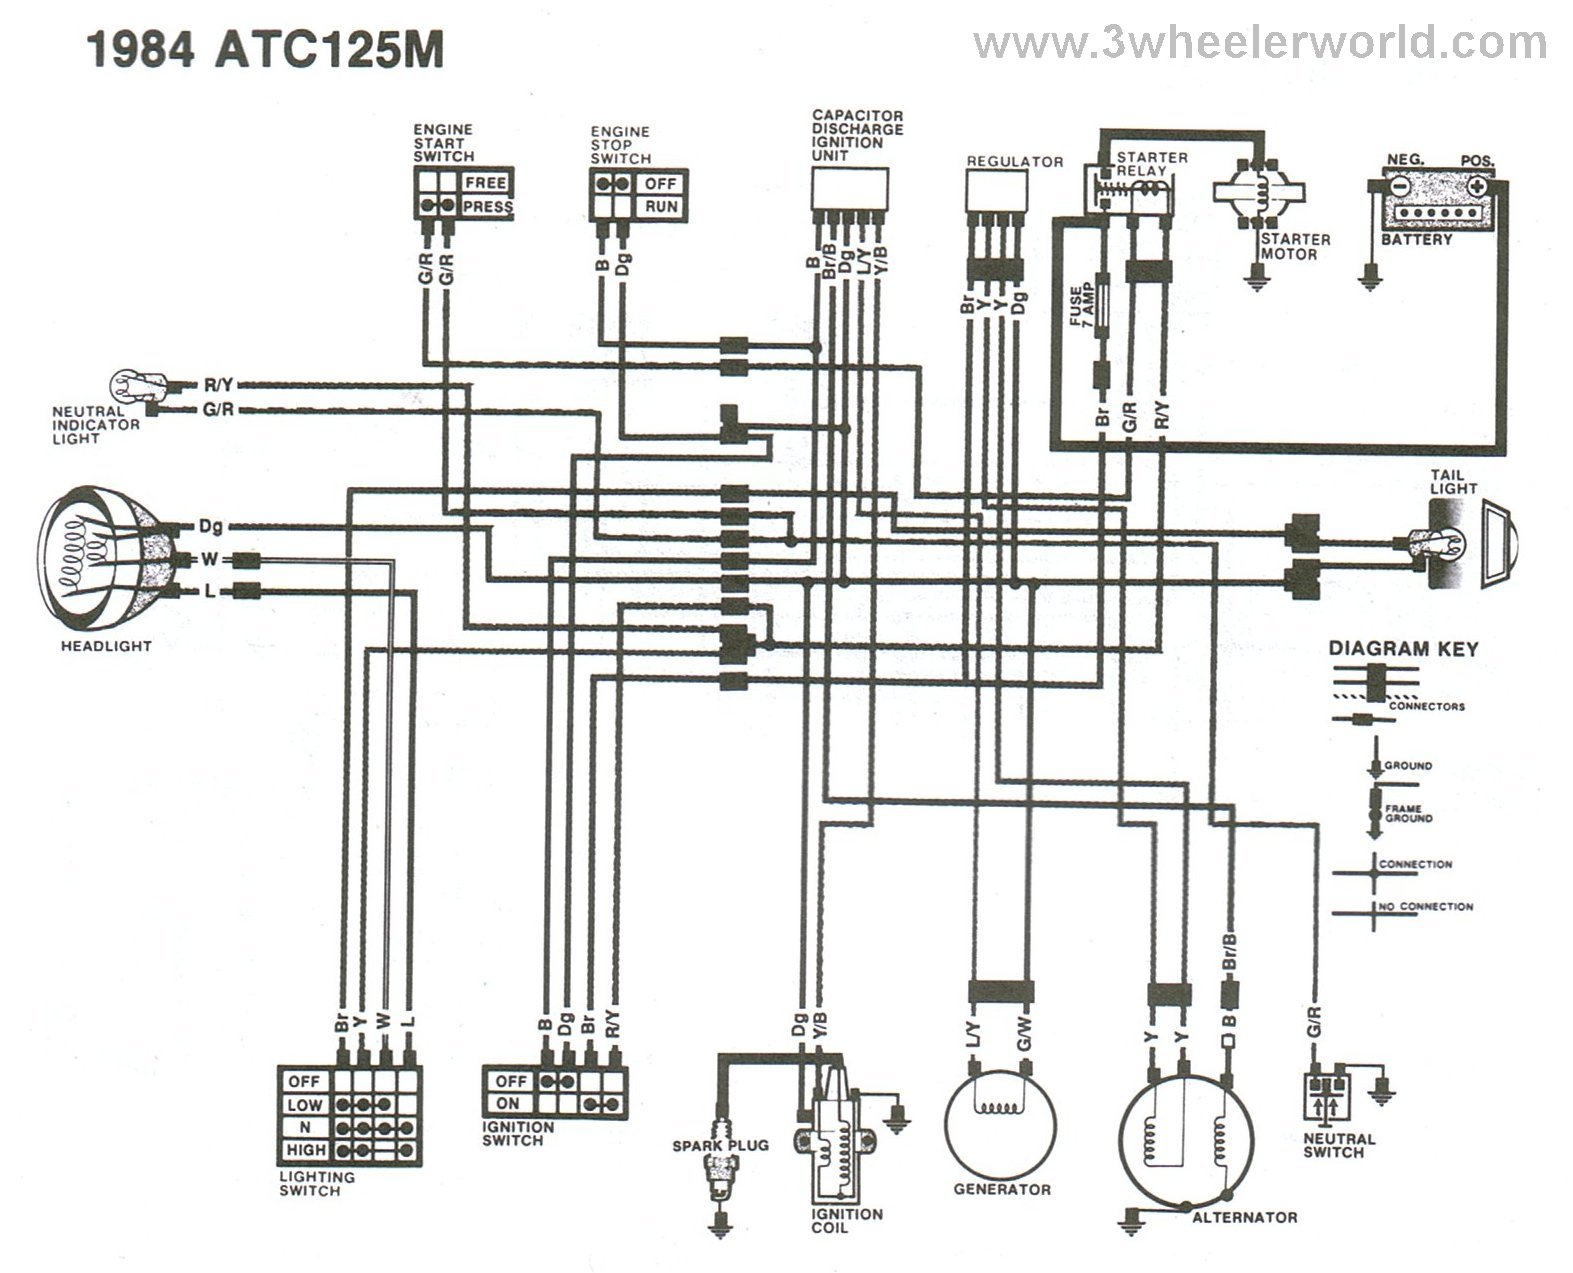 ATC125Mx84 3 wheeler world tech help honda wiring diagrams 3 Wire Headlight Wiring Diagram at eliteediting.co